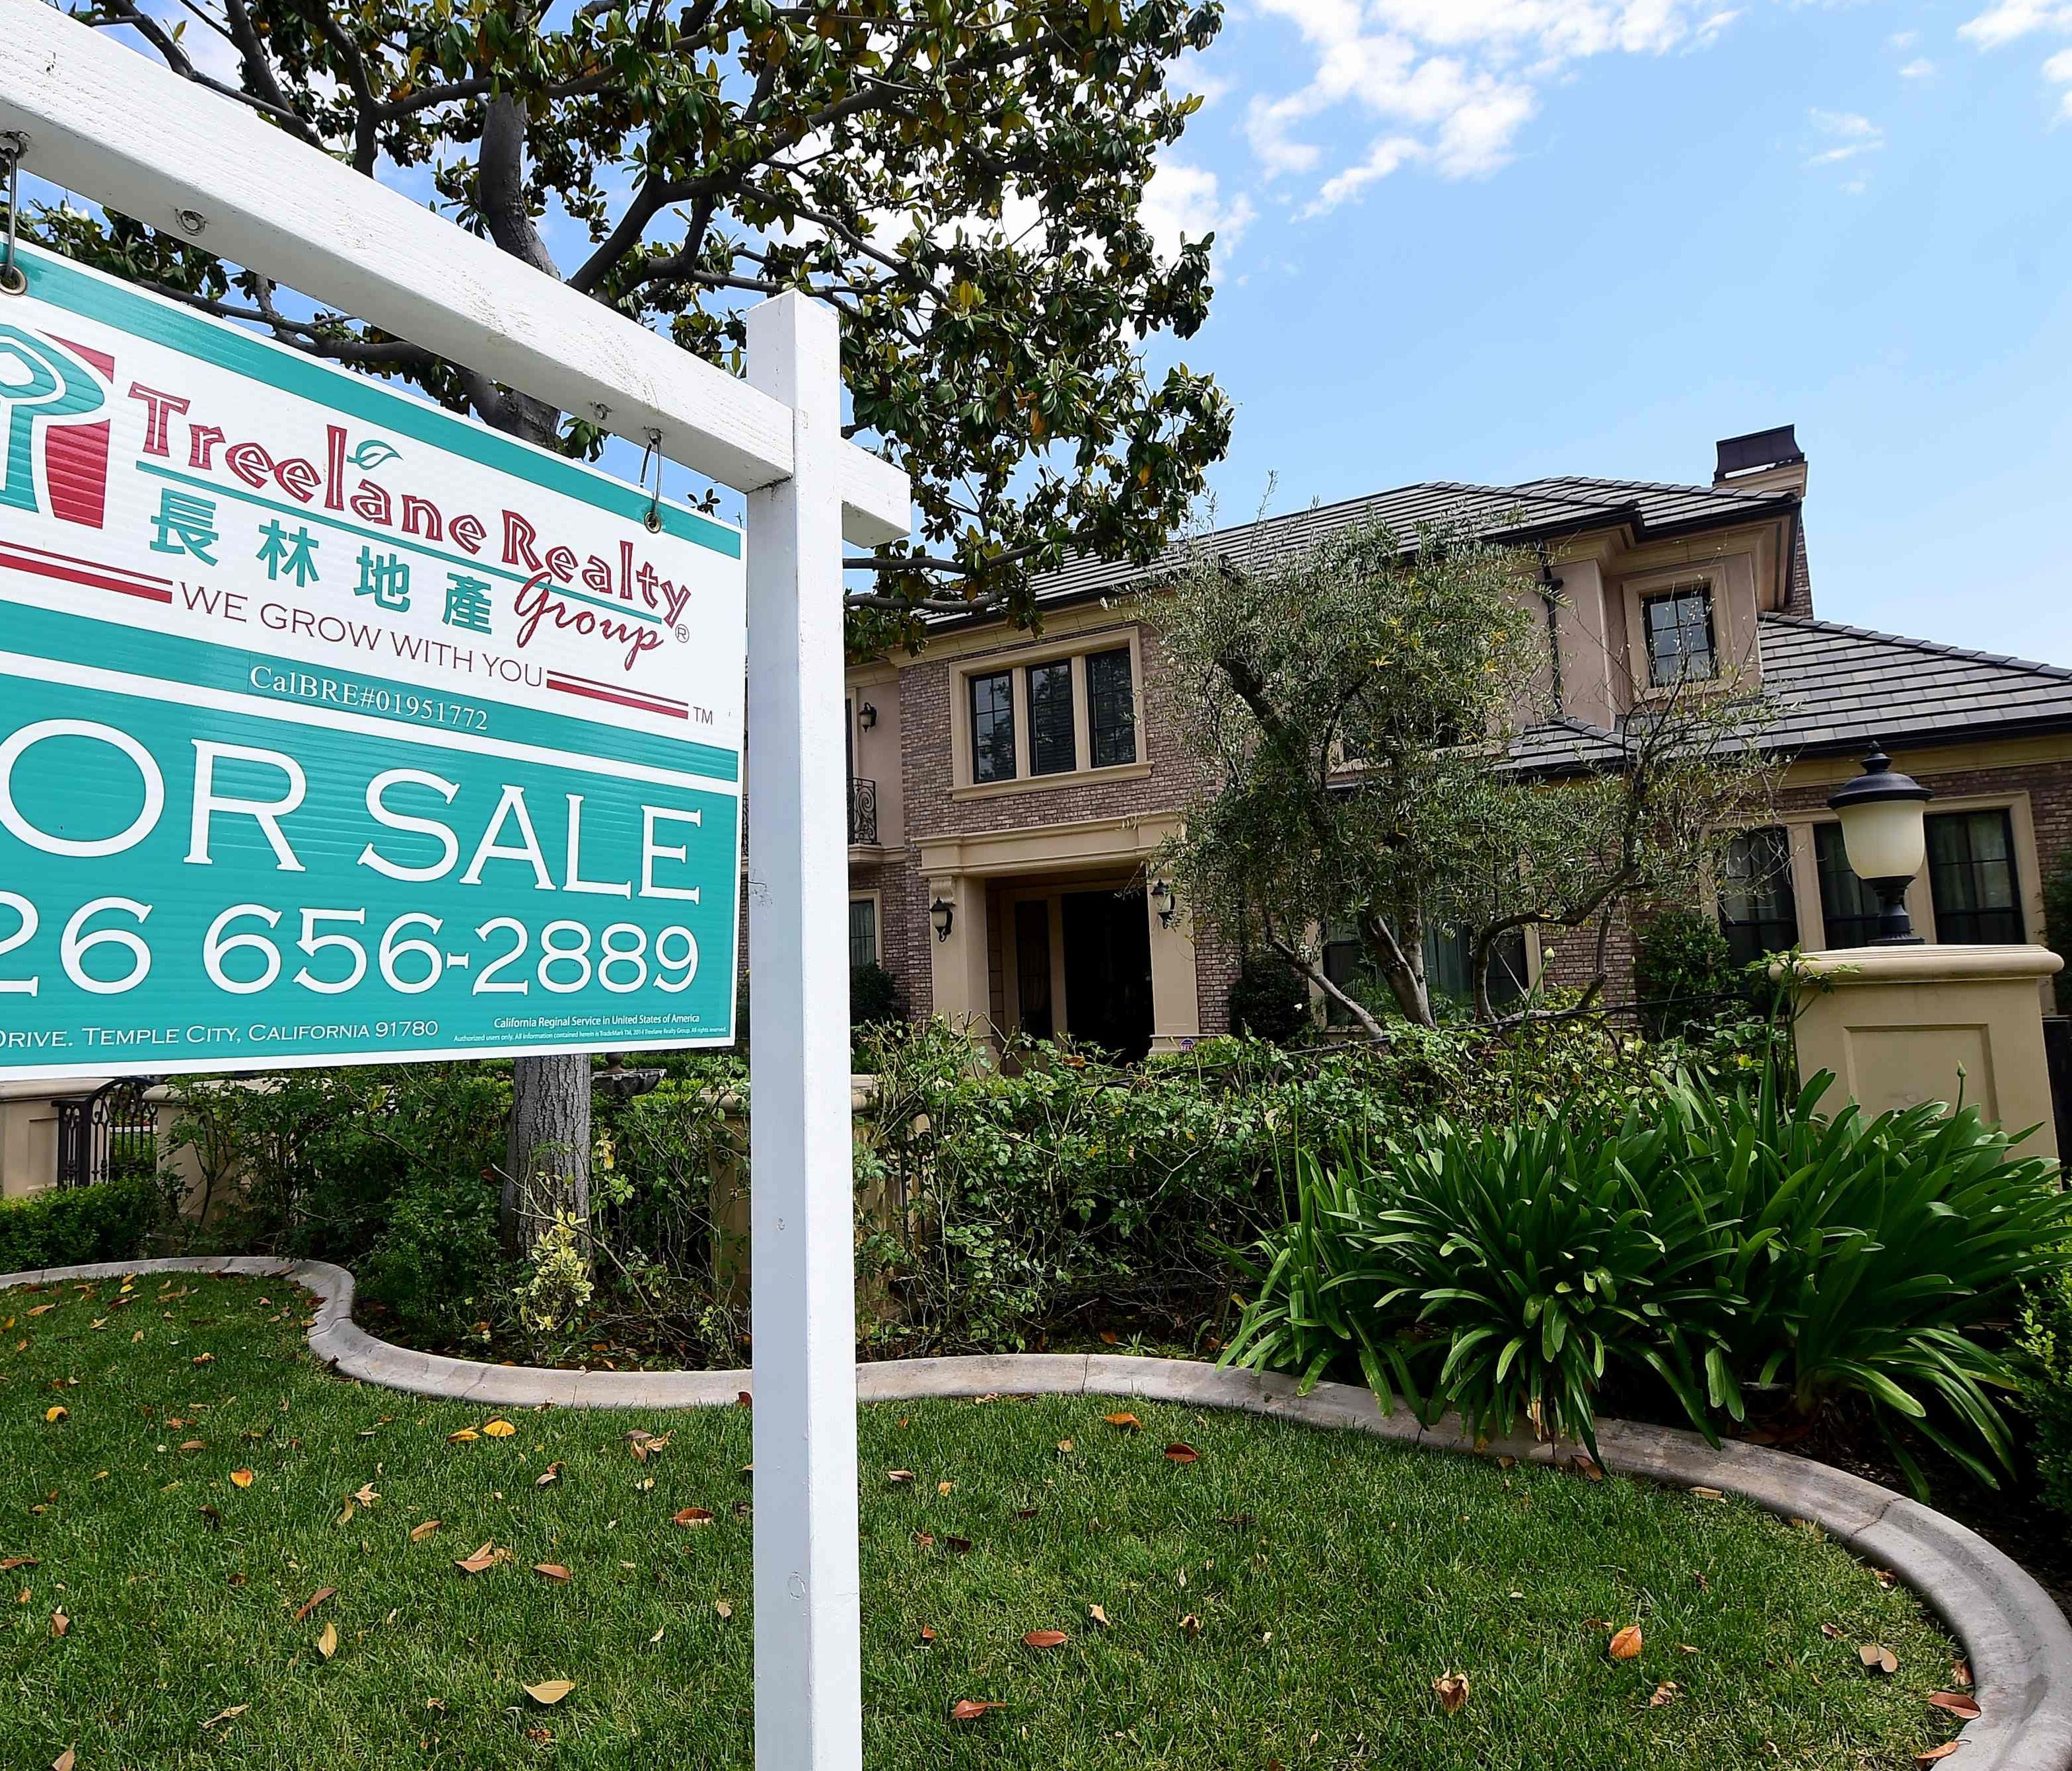 Mortgage rates are on the rise as the average rate for a 30-year mortgage hits new highs for 2017.